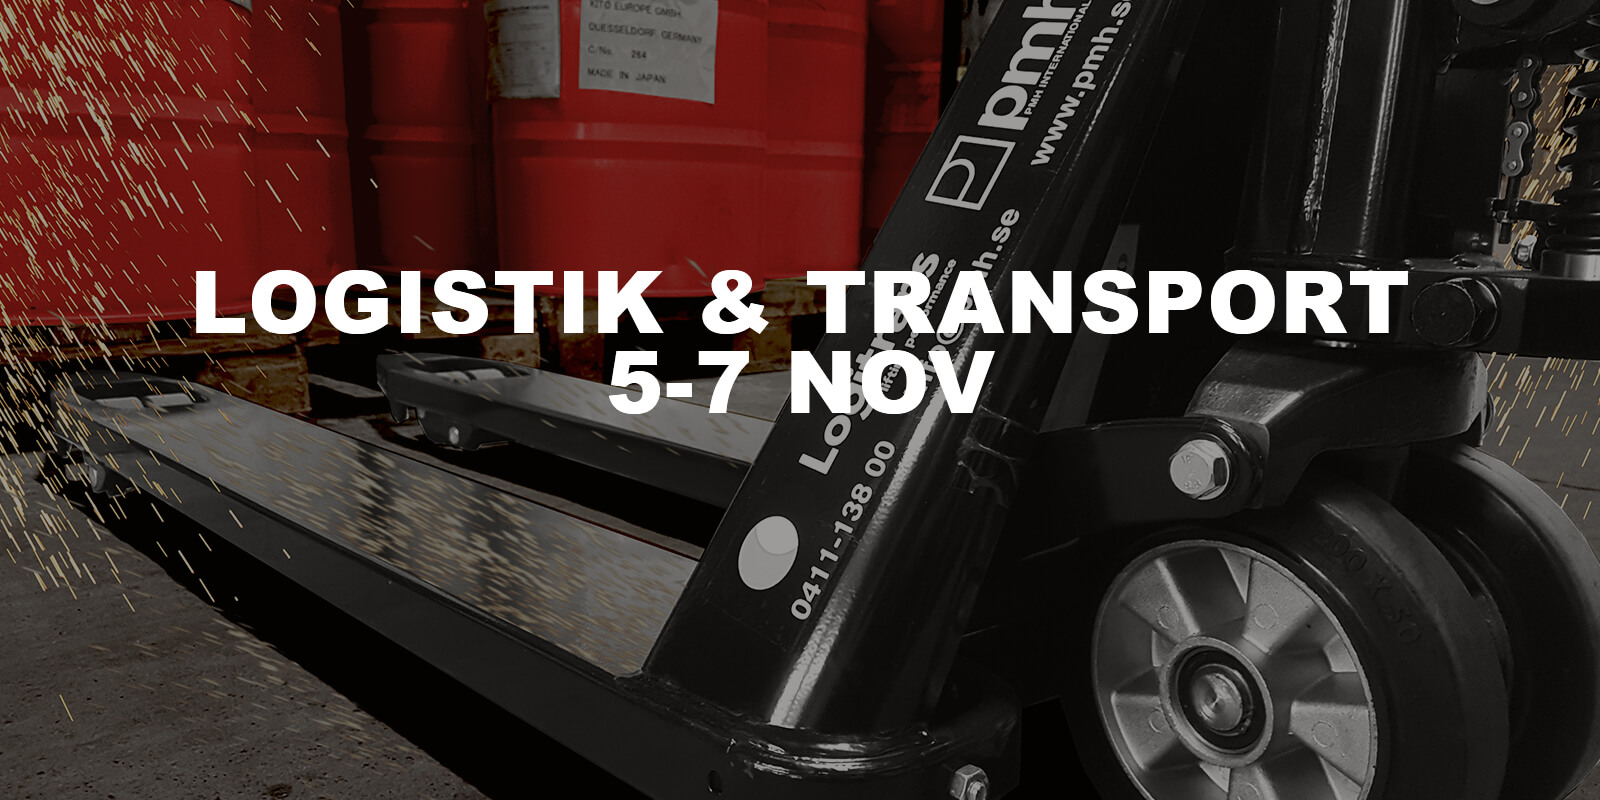 Logistik & Transport Göteborg 5-7 November